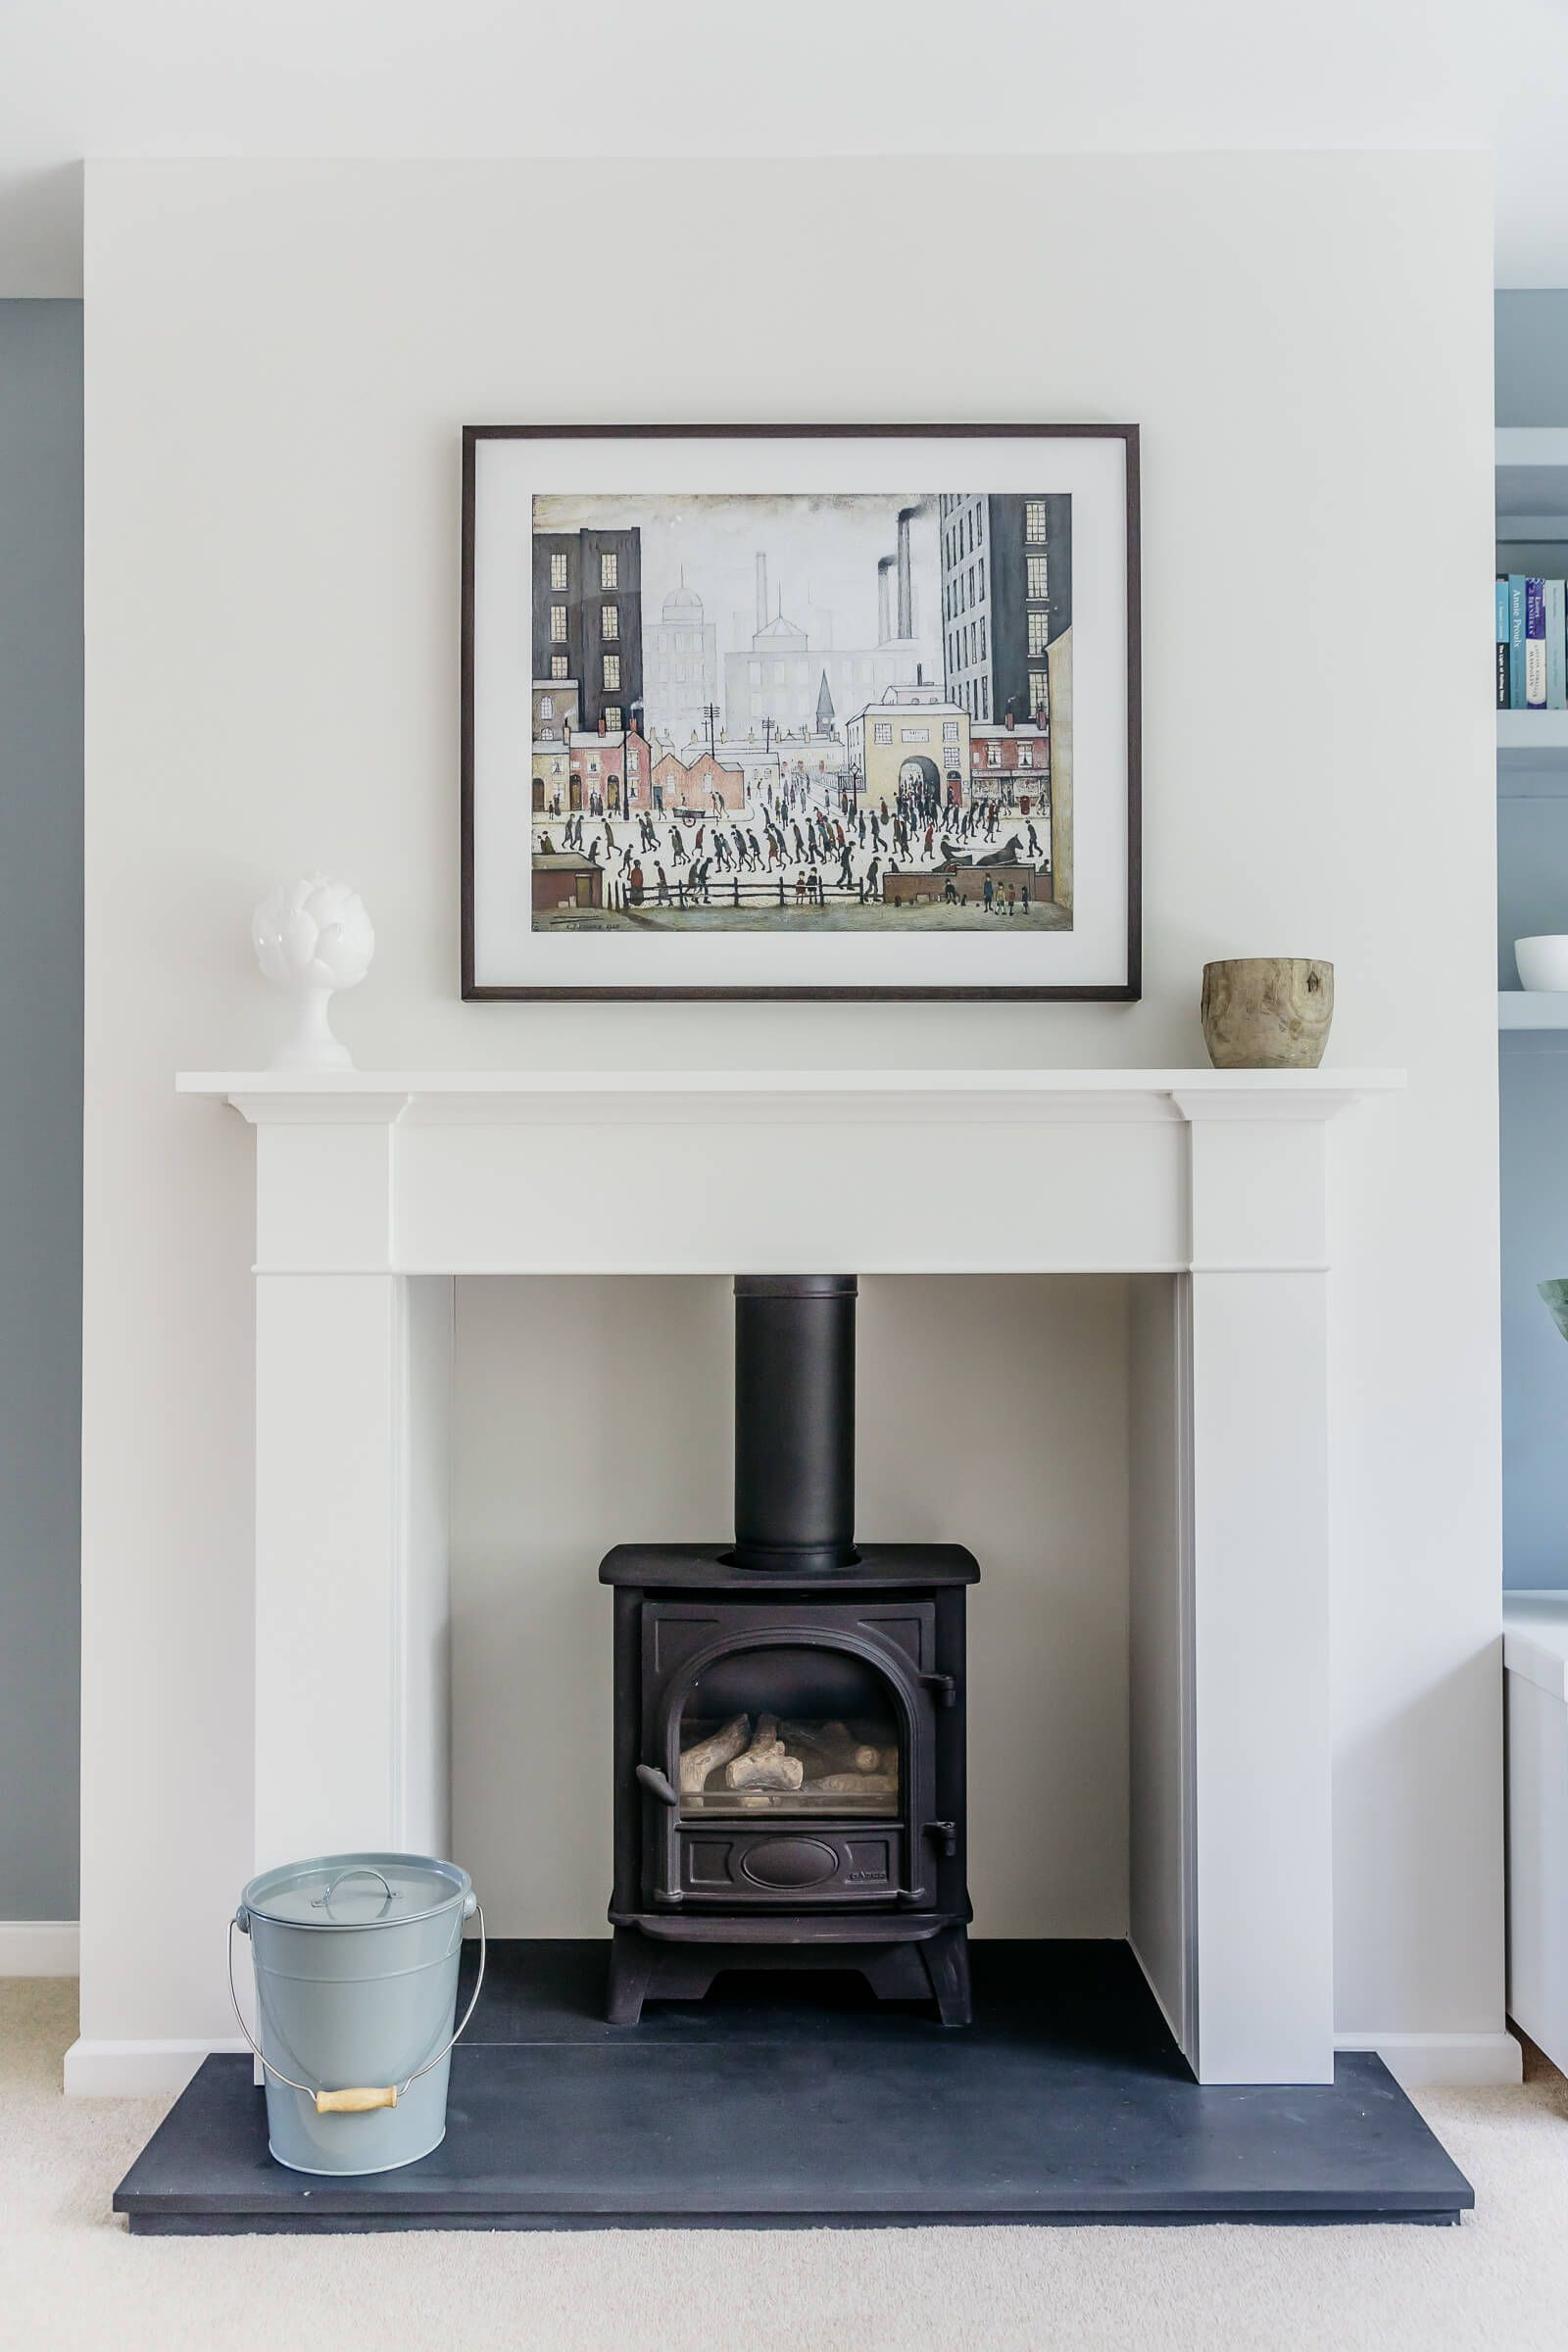 Sitting room mantle piece contemporary country chesneys contemporary gas stove slate hearth lowry print walls in little greene slaked lime mid and